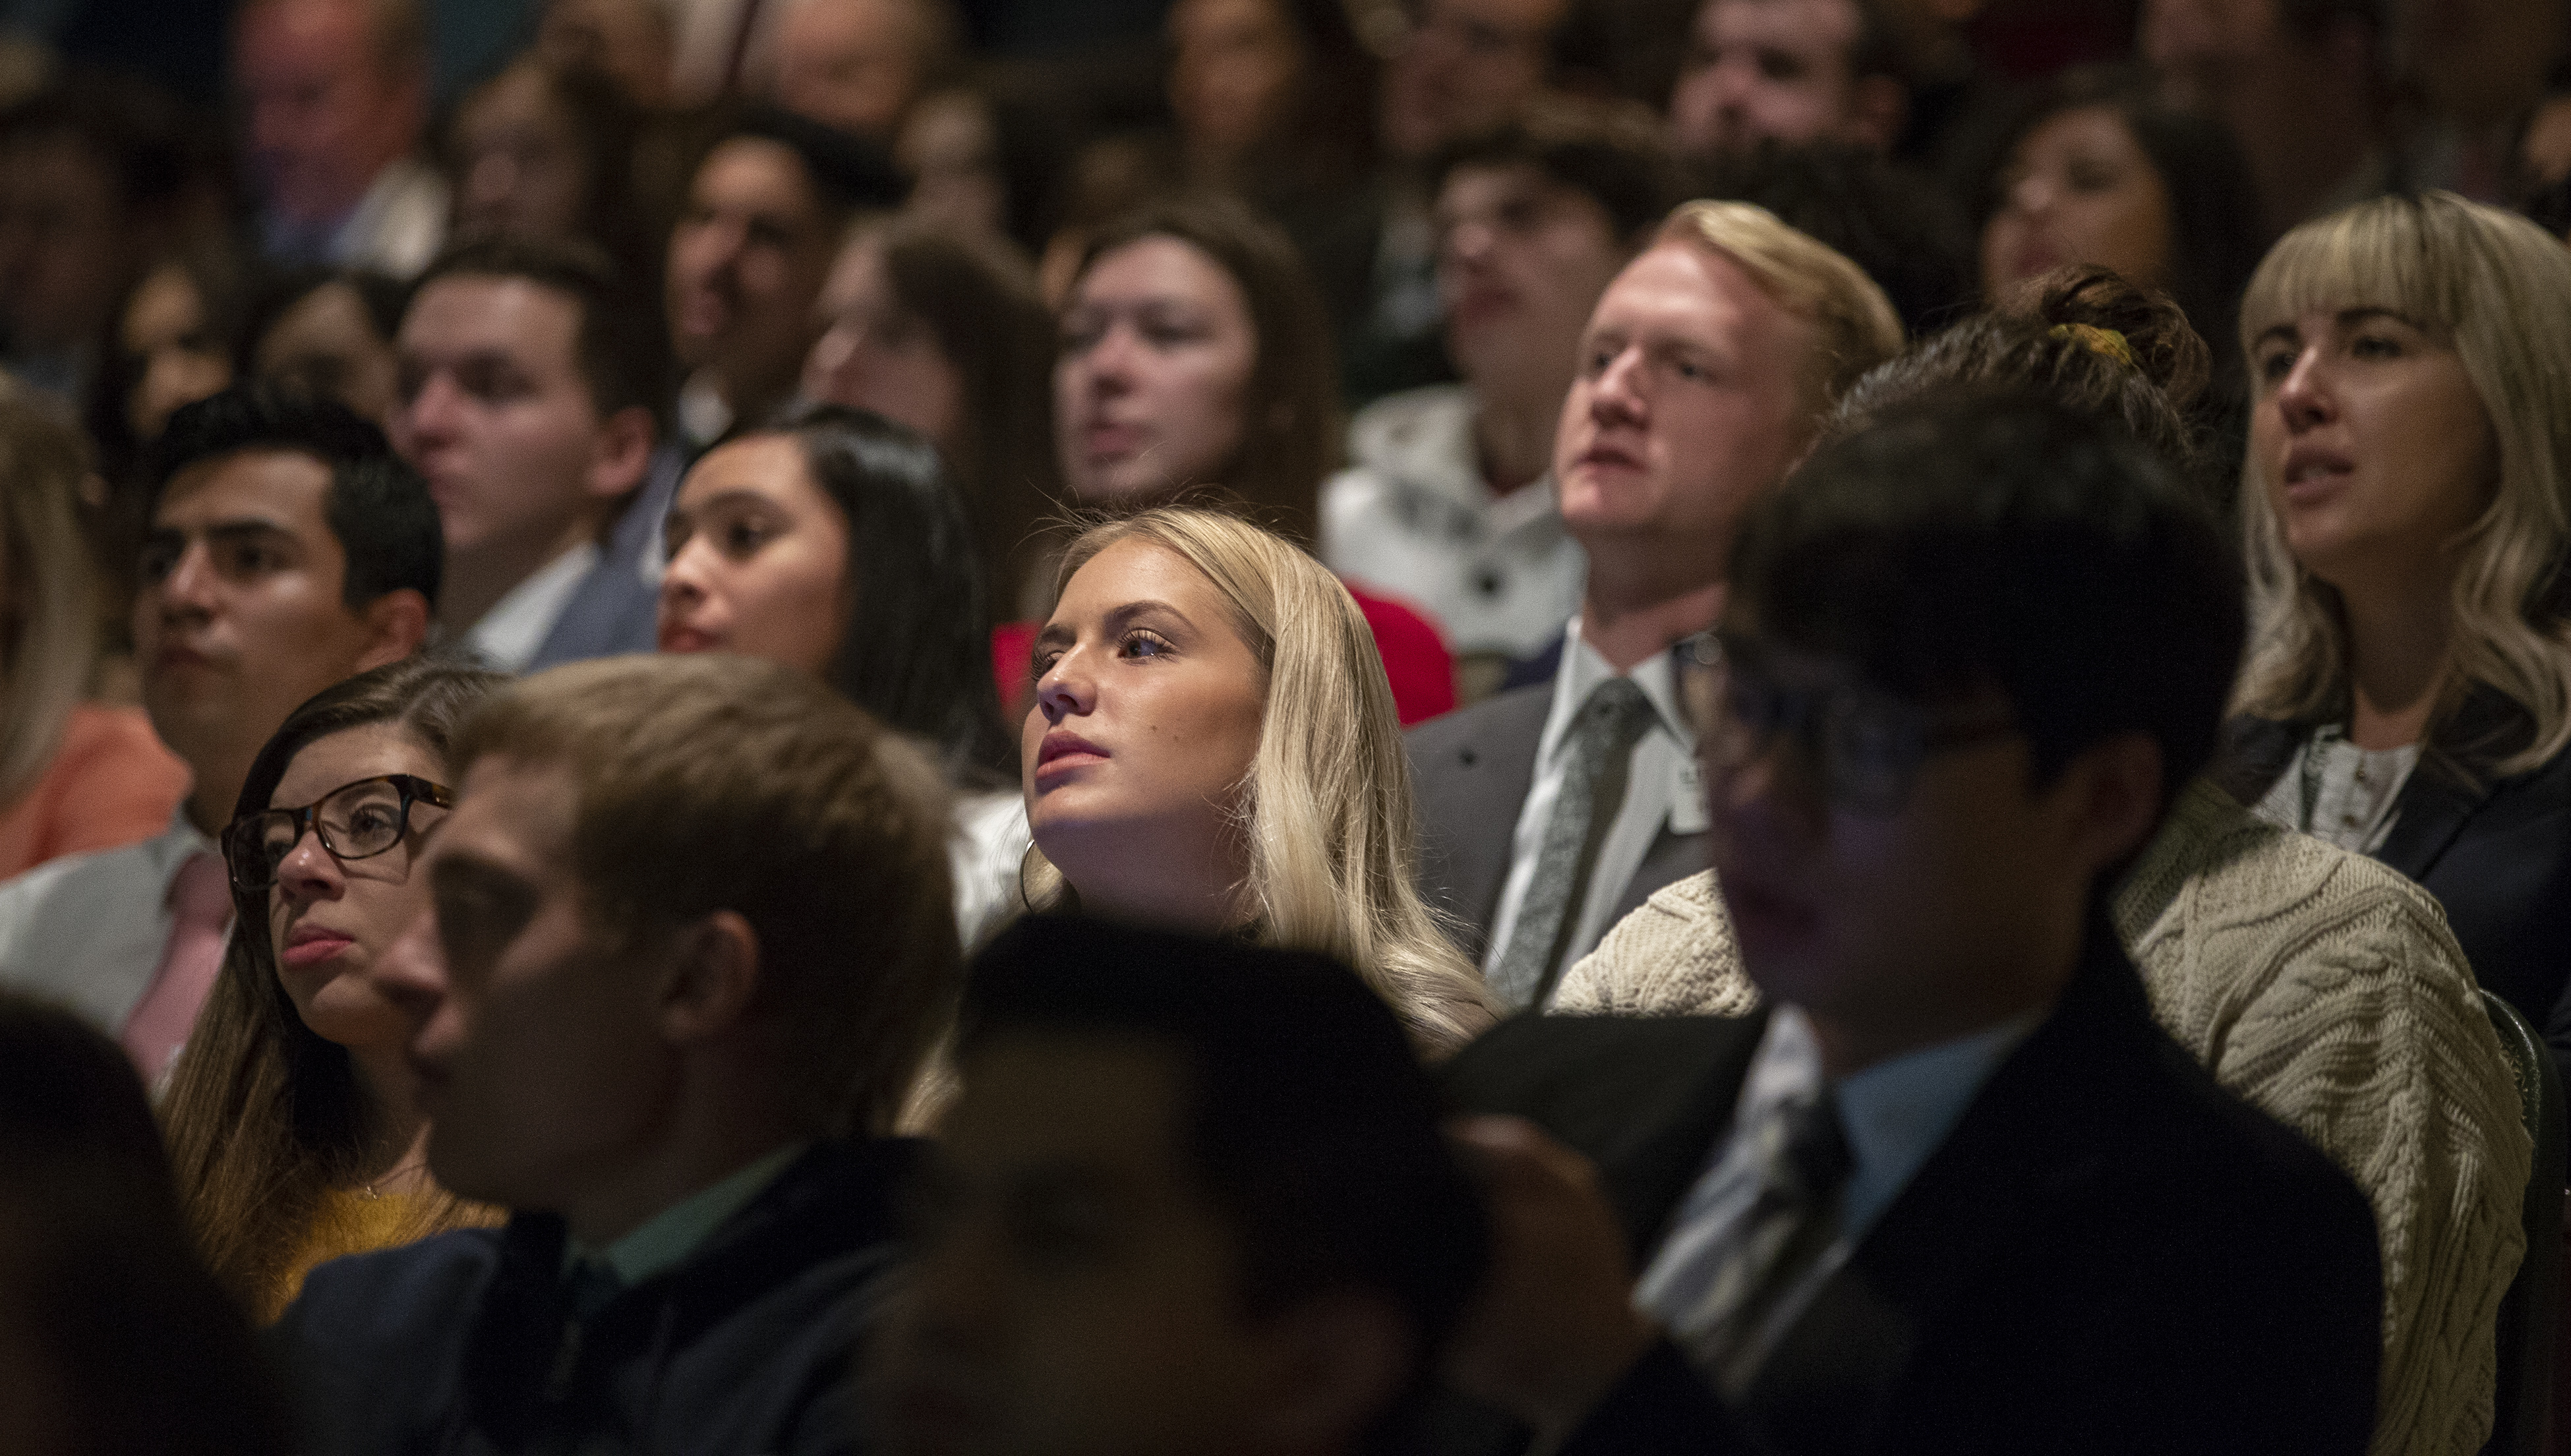 Audience members listen as President Henry B. Eyring speaks to LDS Business College students during a devotional in the Conference Center theater in Salt Lake city on Tuesday, Nov. 6, 2018.